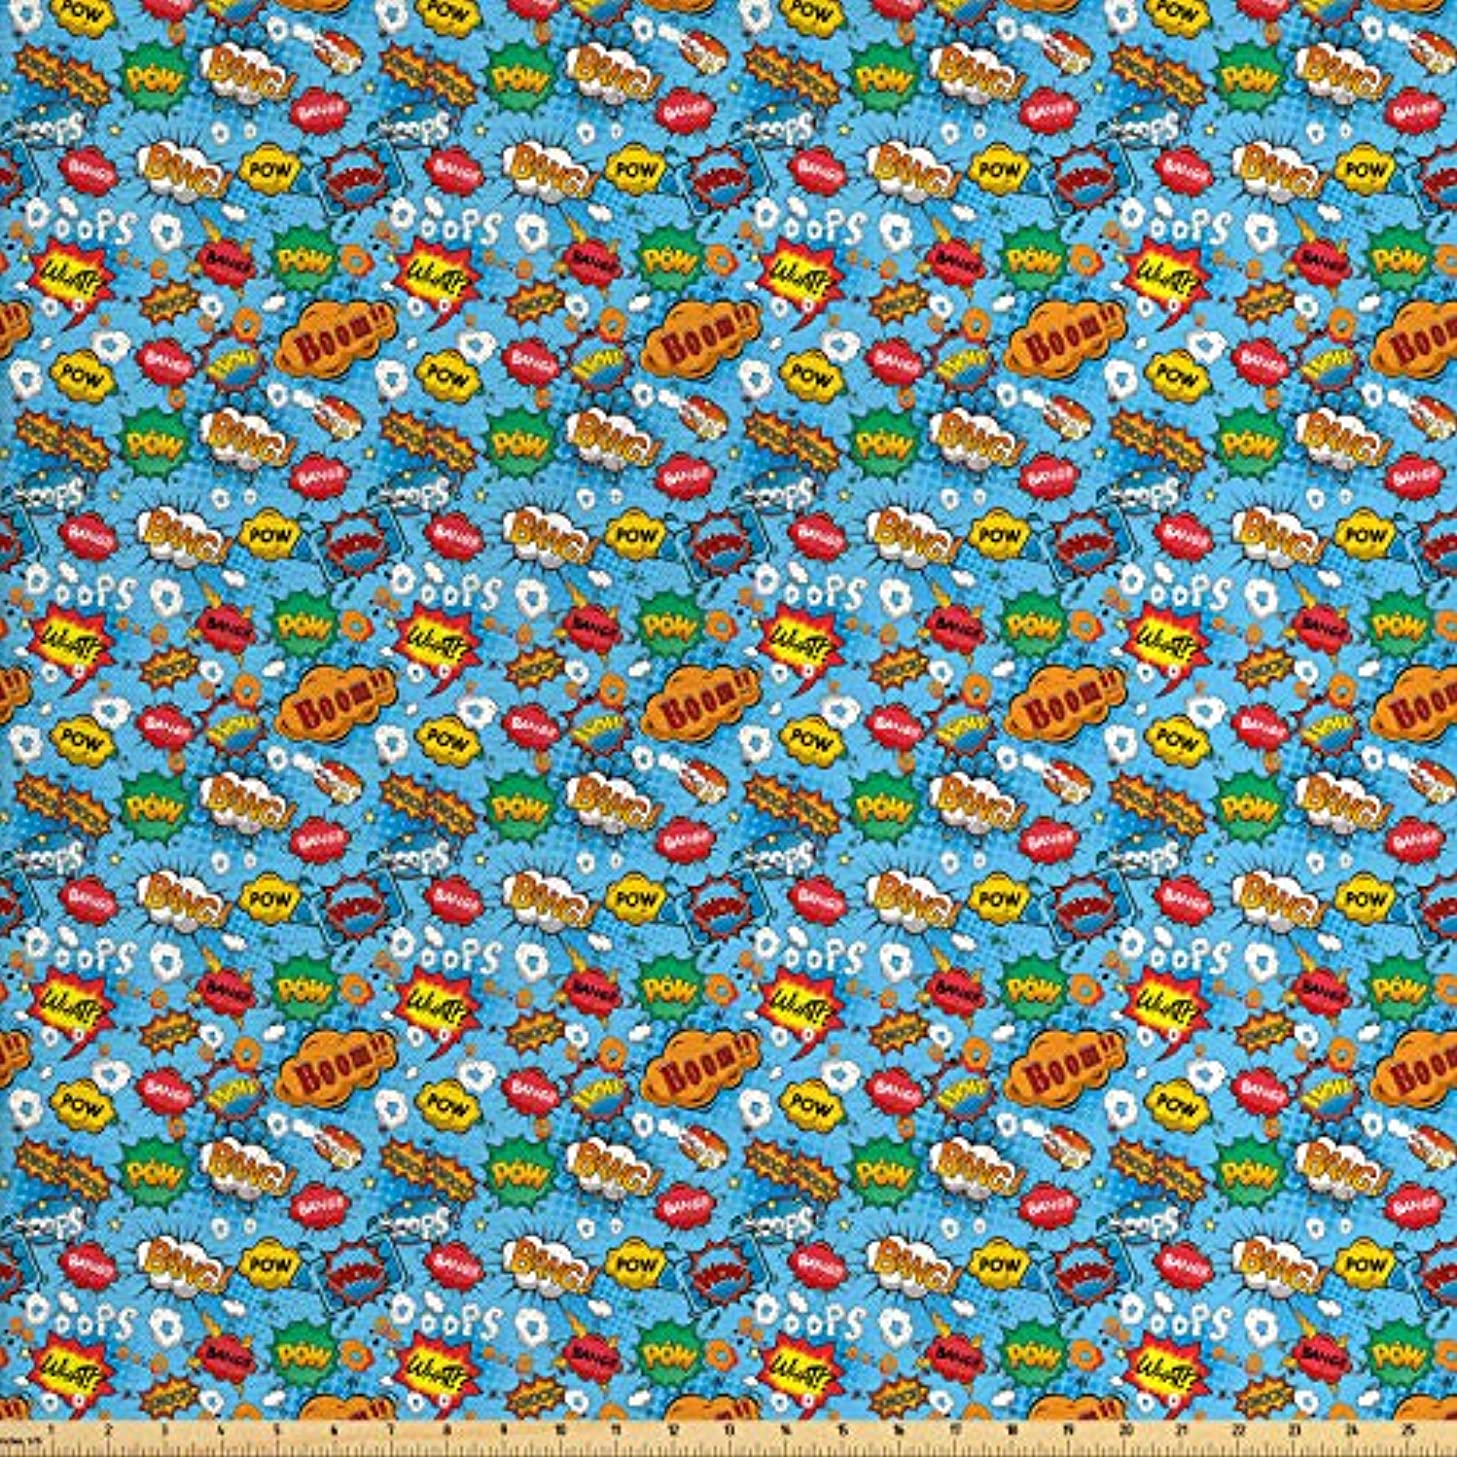 Lunarable Superhero Fabric by The Yard, Colorful Comic Style Icons Effects Boom Scream Magazine Signs Pop Art Illustarion, Decorative Fabric for Upholstery and Home Accents, 1 Yard, Multicolor